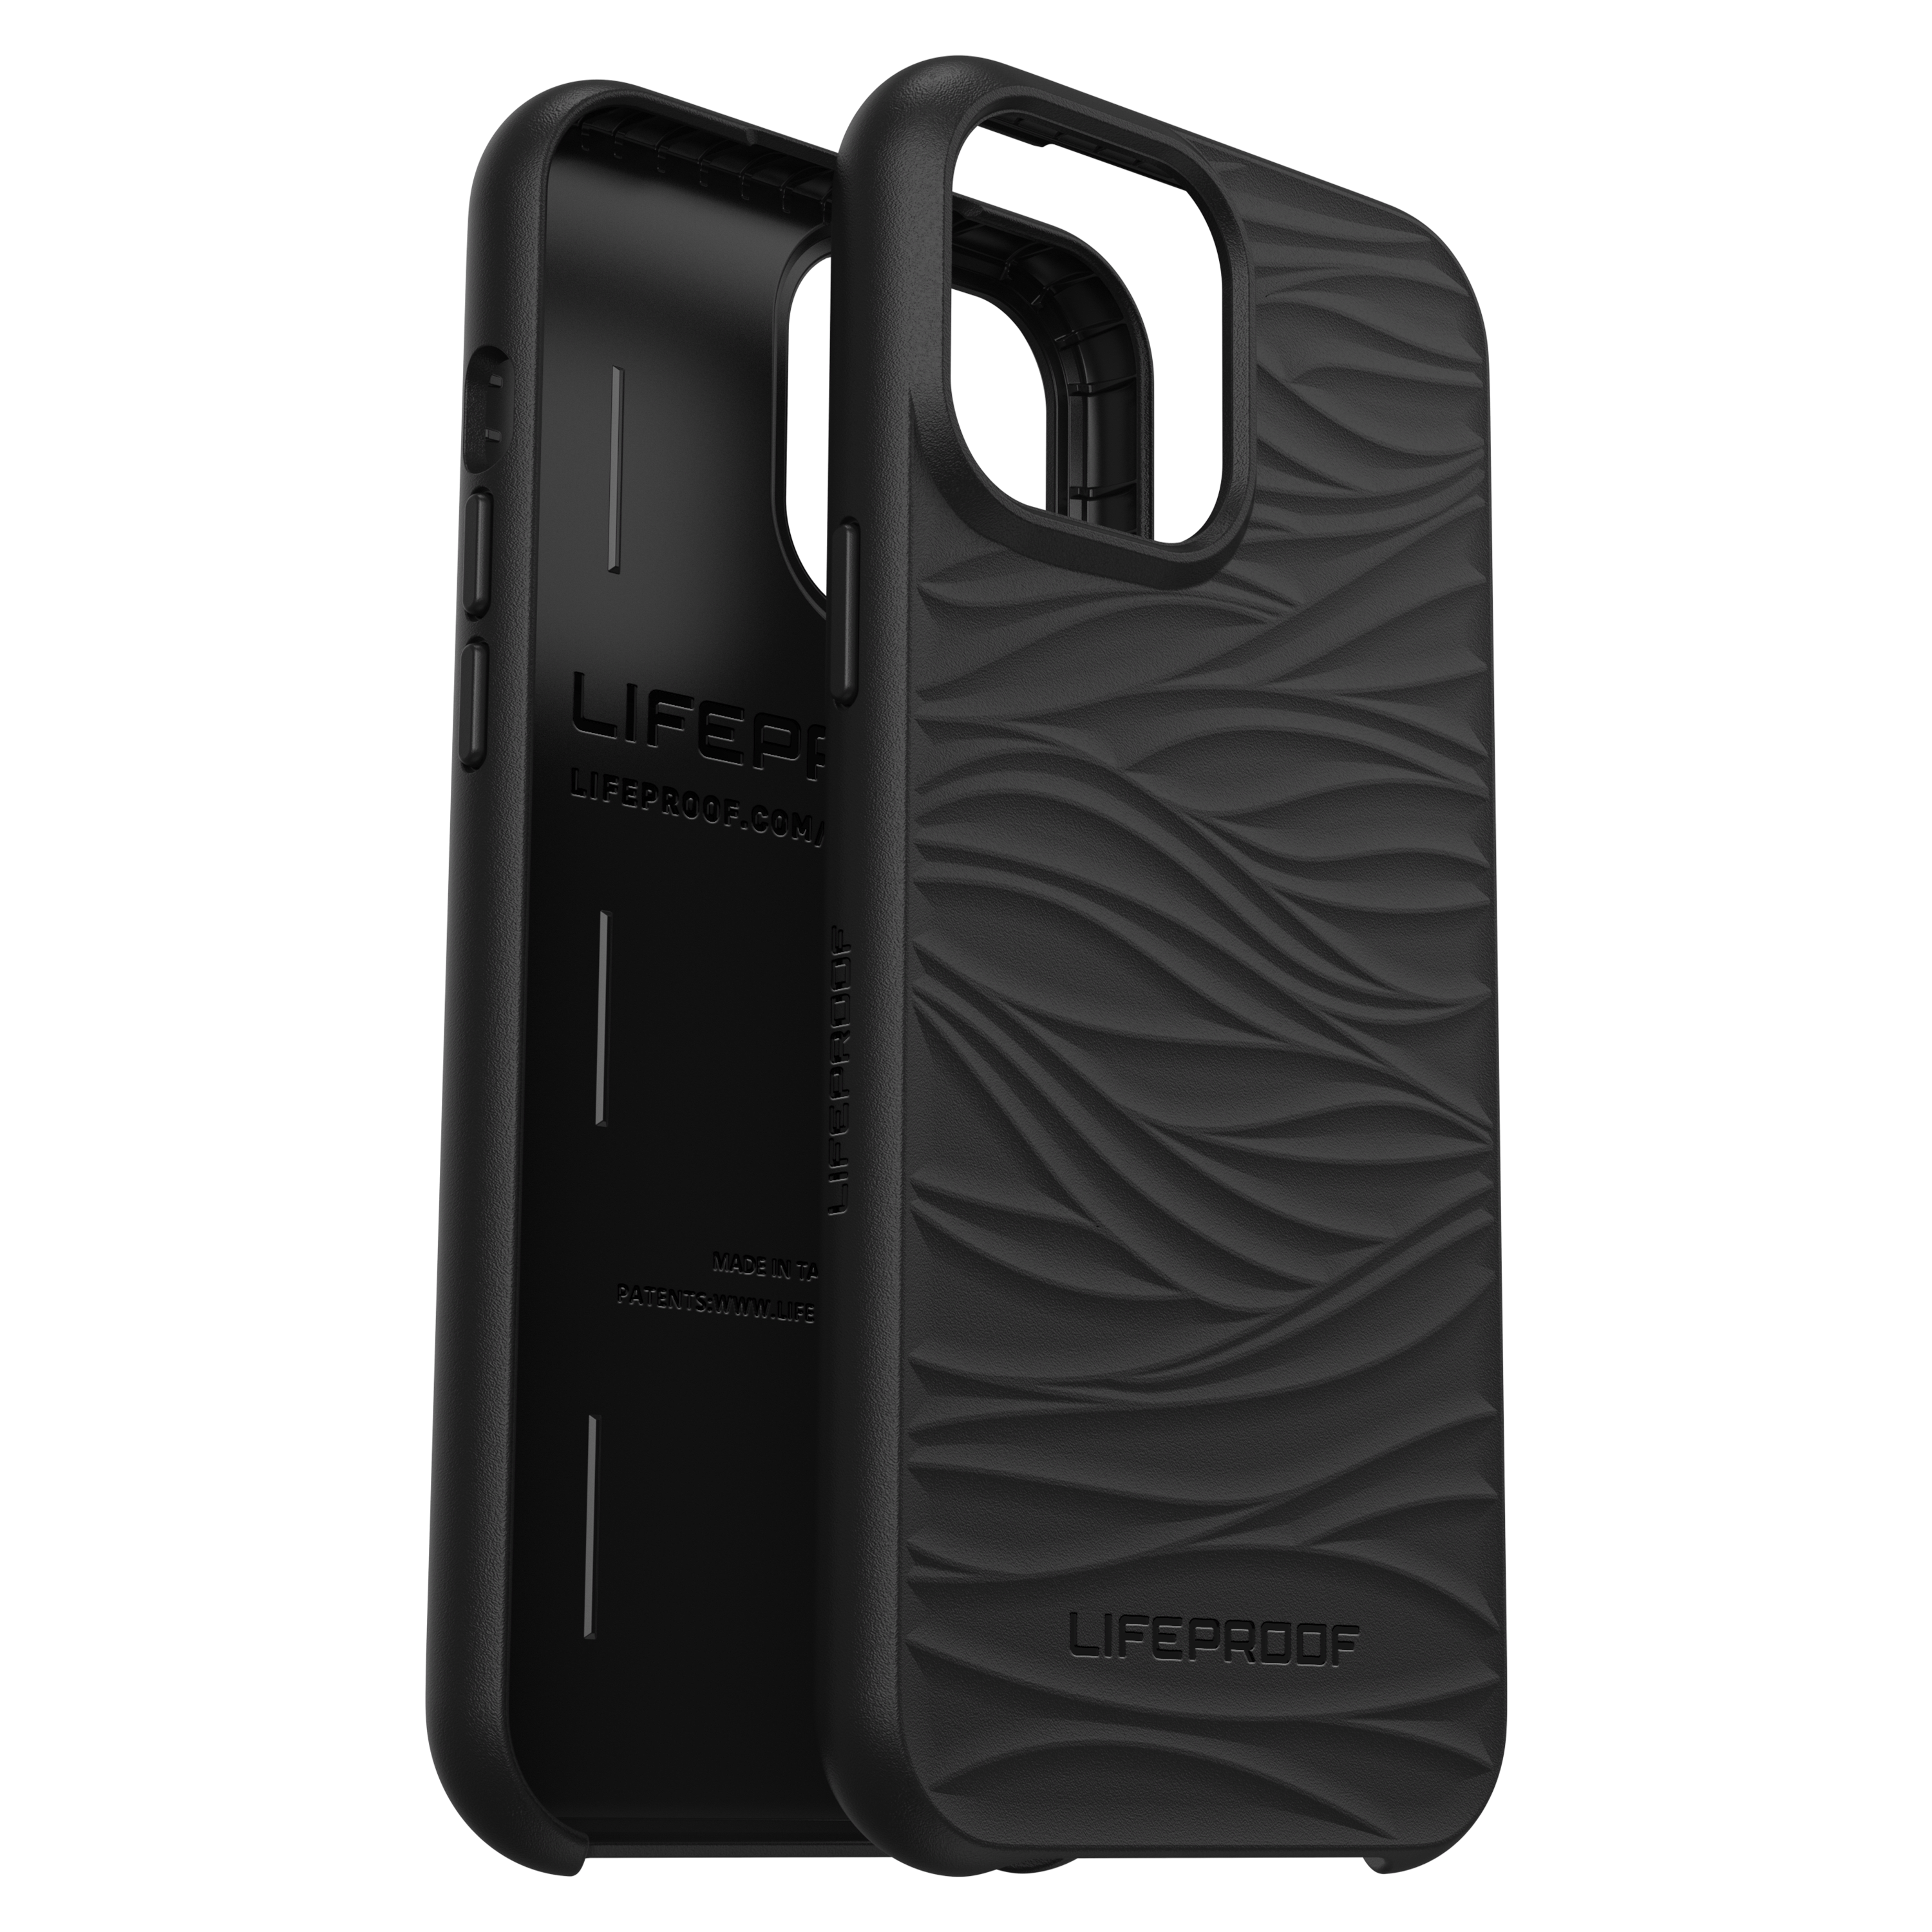 wholesale cellphone accessories LIFEPROOF WAKE CASES